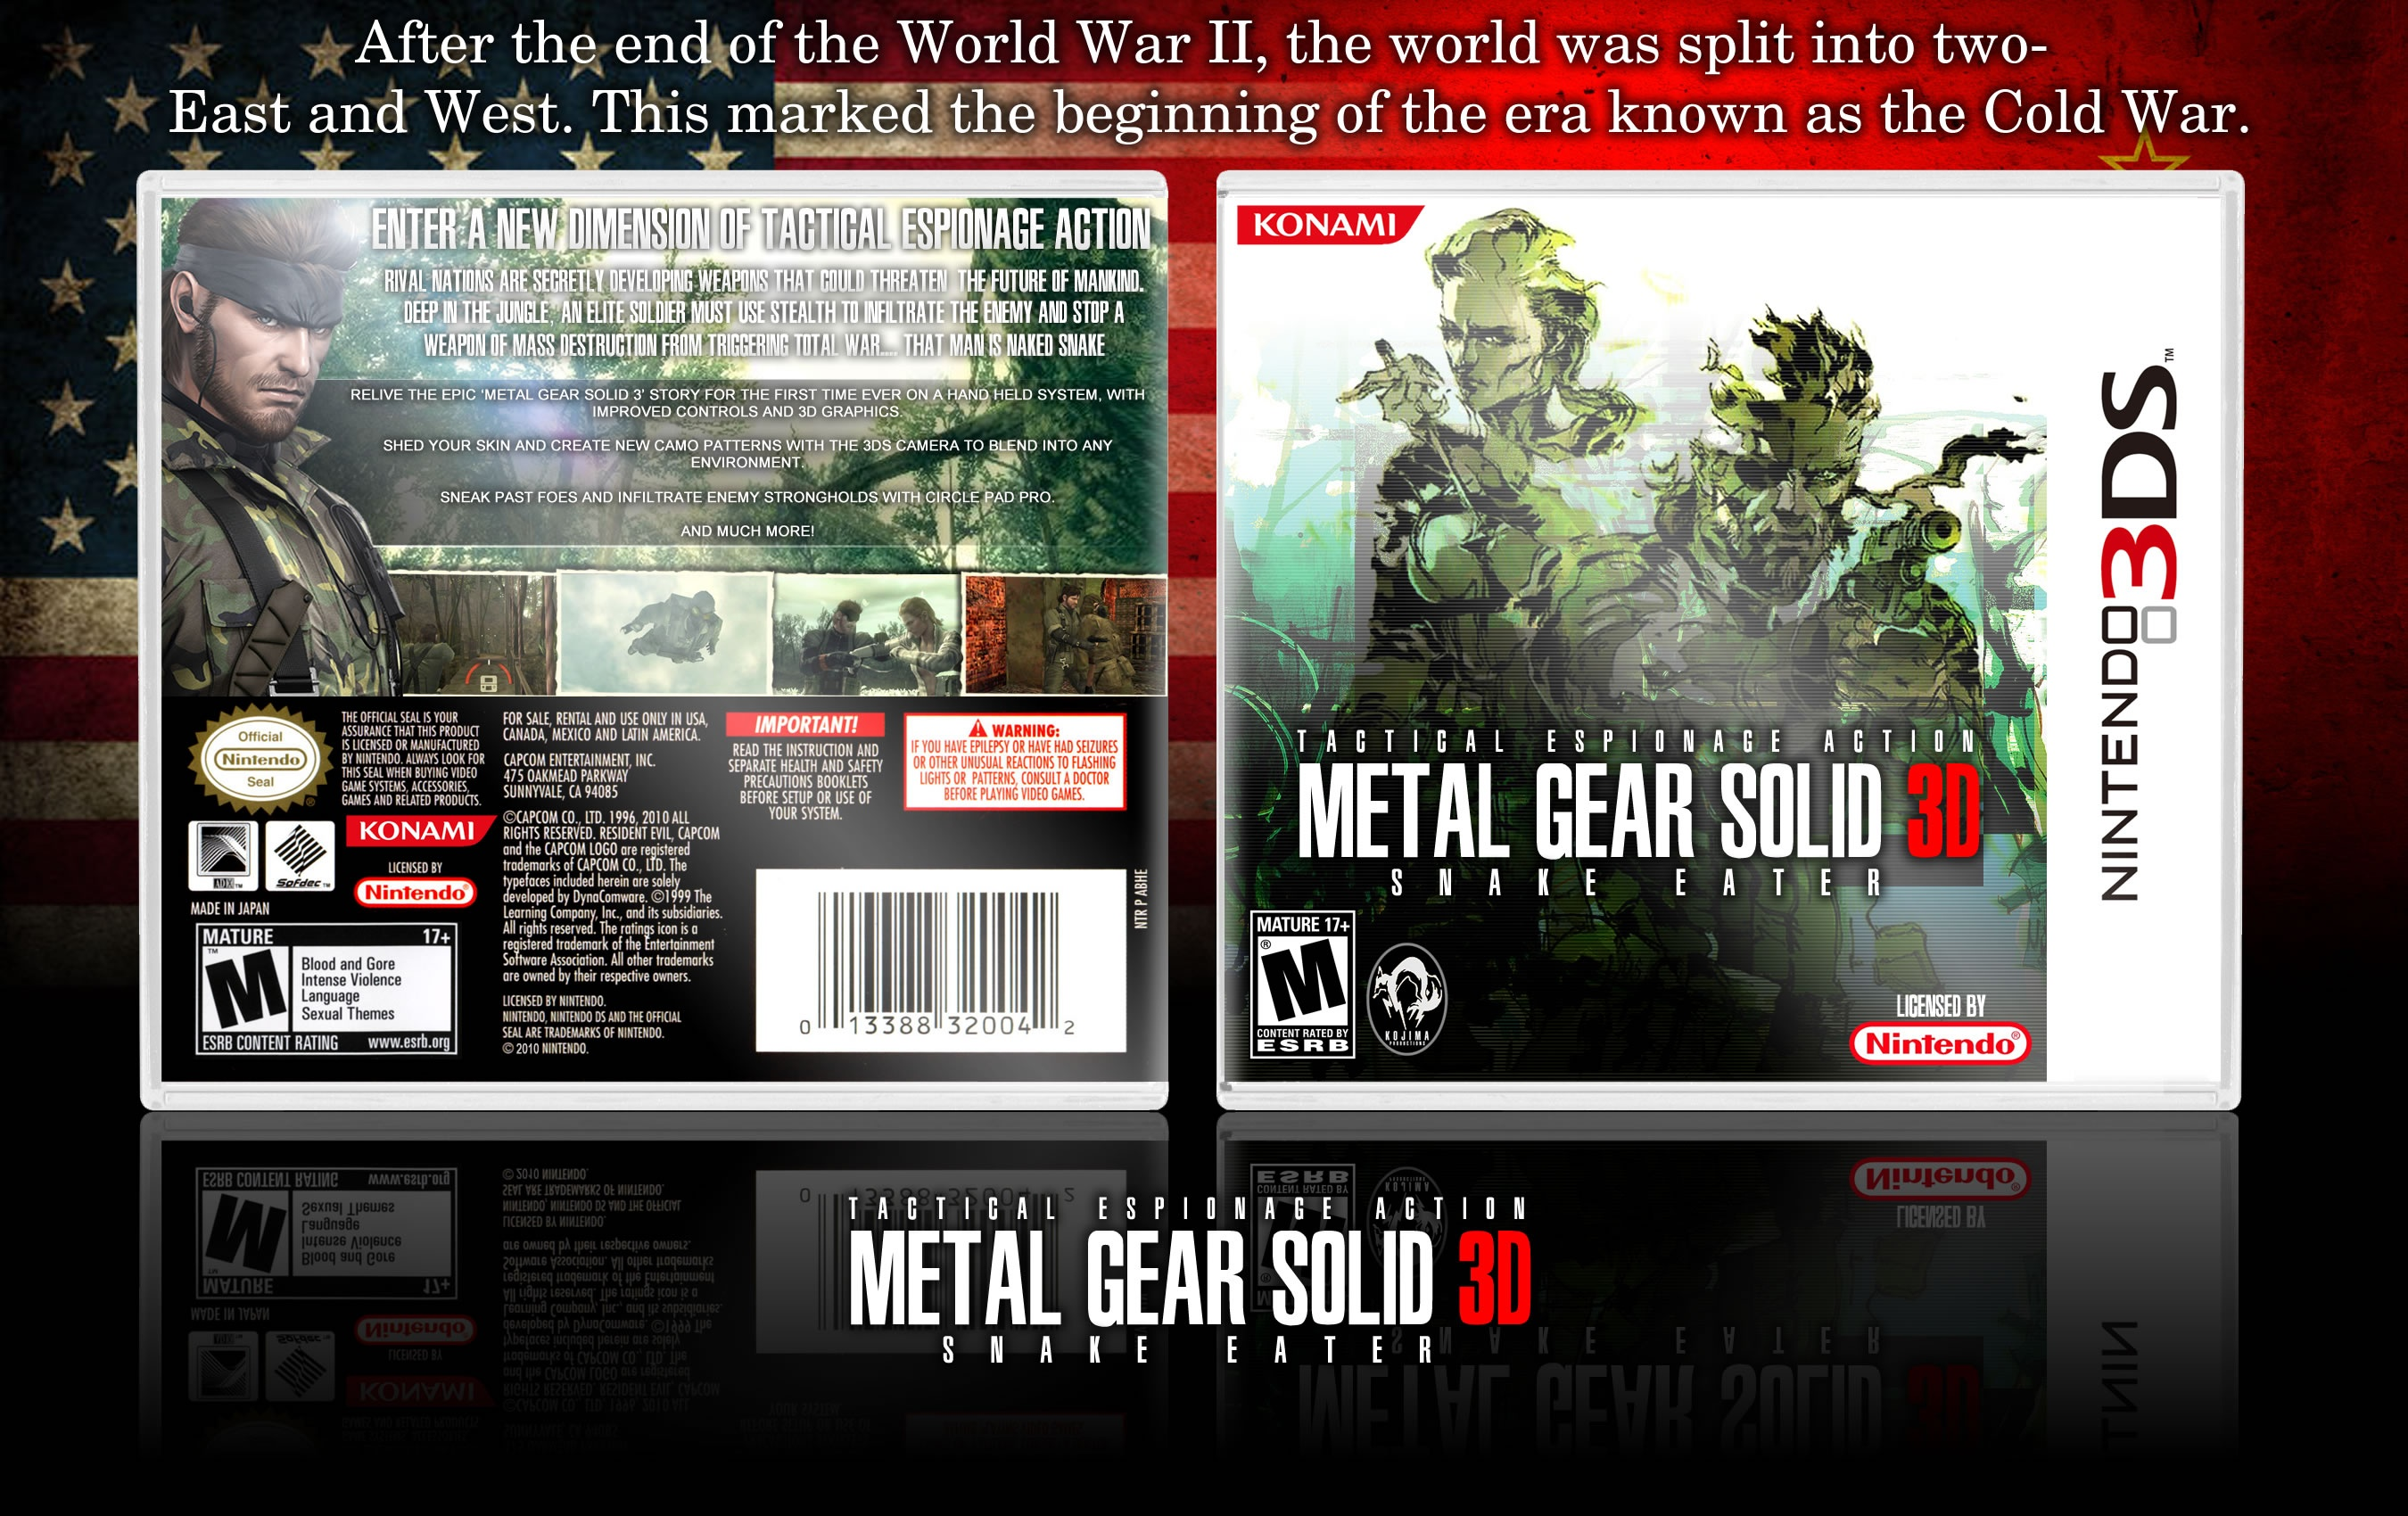 Metal Gear Solid 3D: Snake Eater box cover